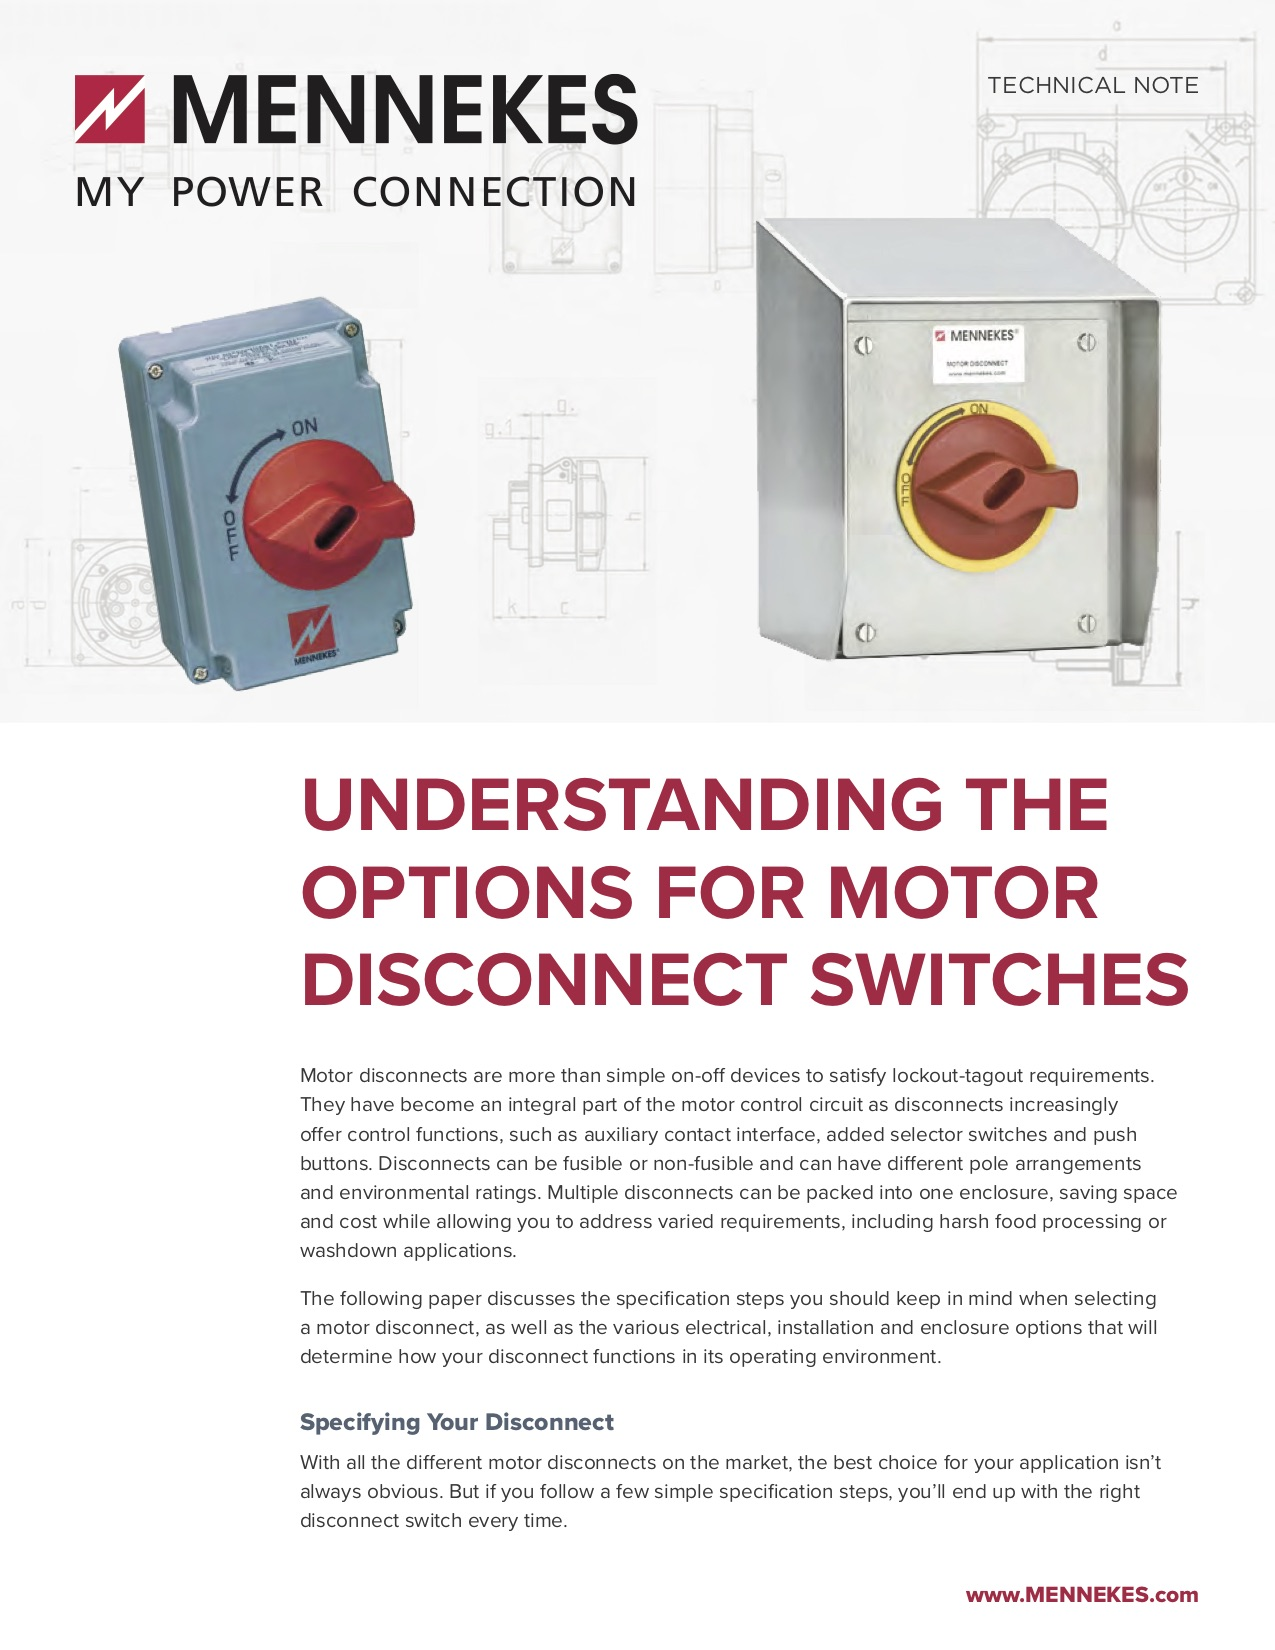 understanding the options for motor disconnect switches part ii rh mennekes com Mennekes Switch Mennekes Disconnects